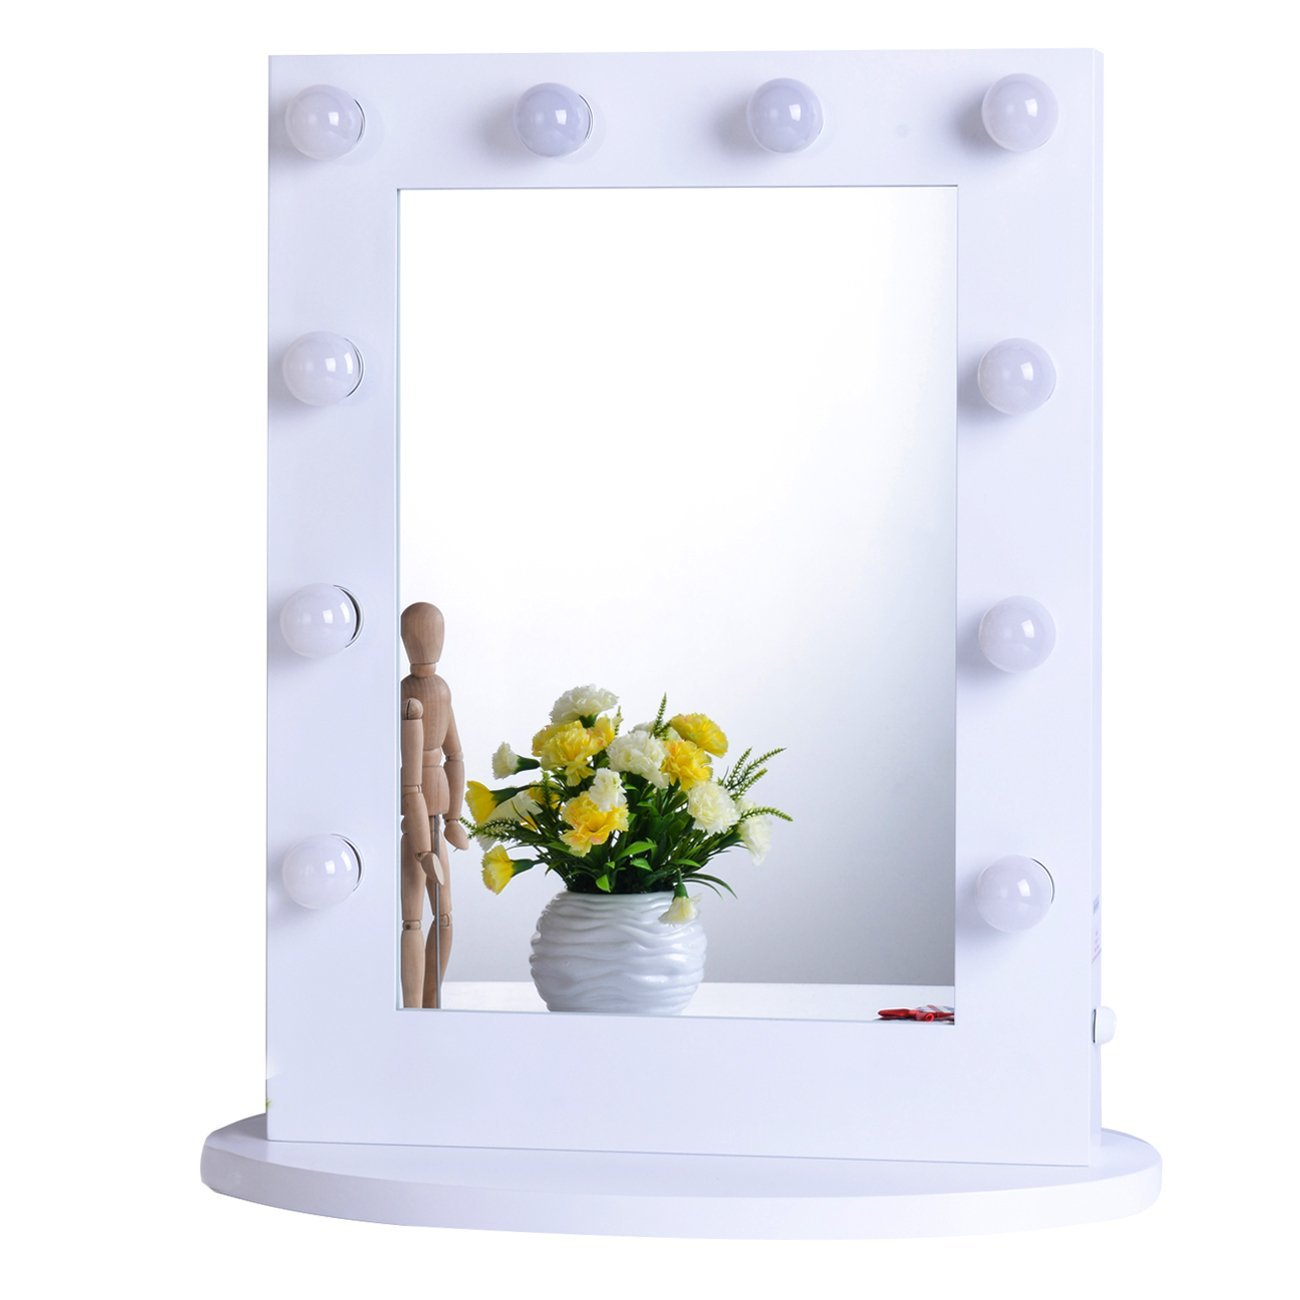 vanity mirrors amazon.com: chende white hollywood makeup vanity mirror with light  tabletops lighted mirror VSUBZFT